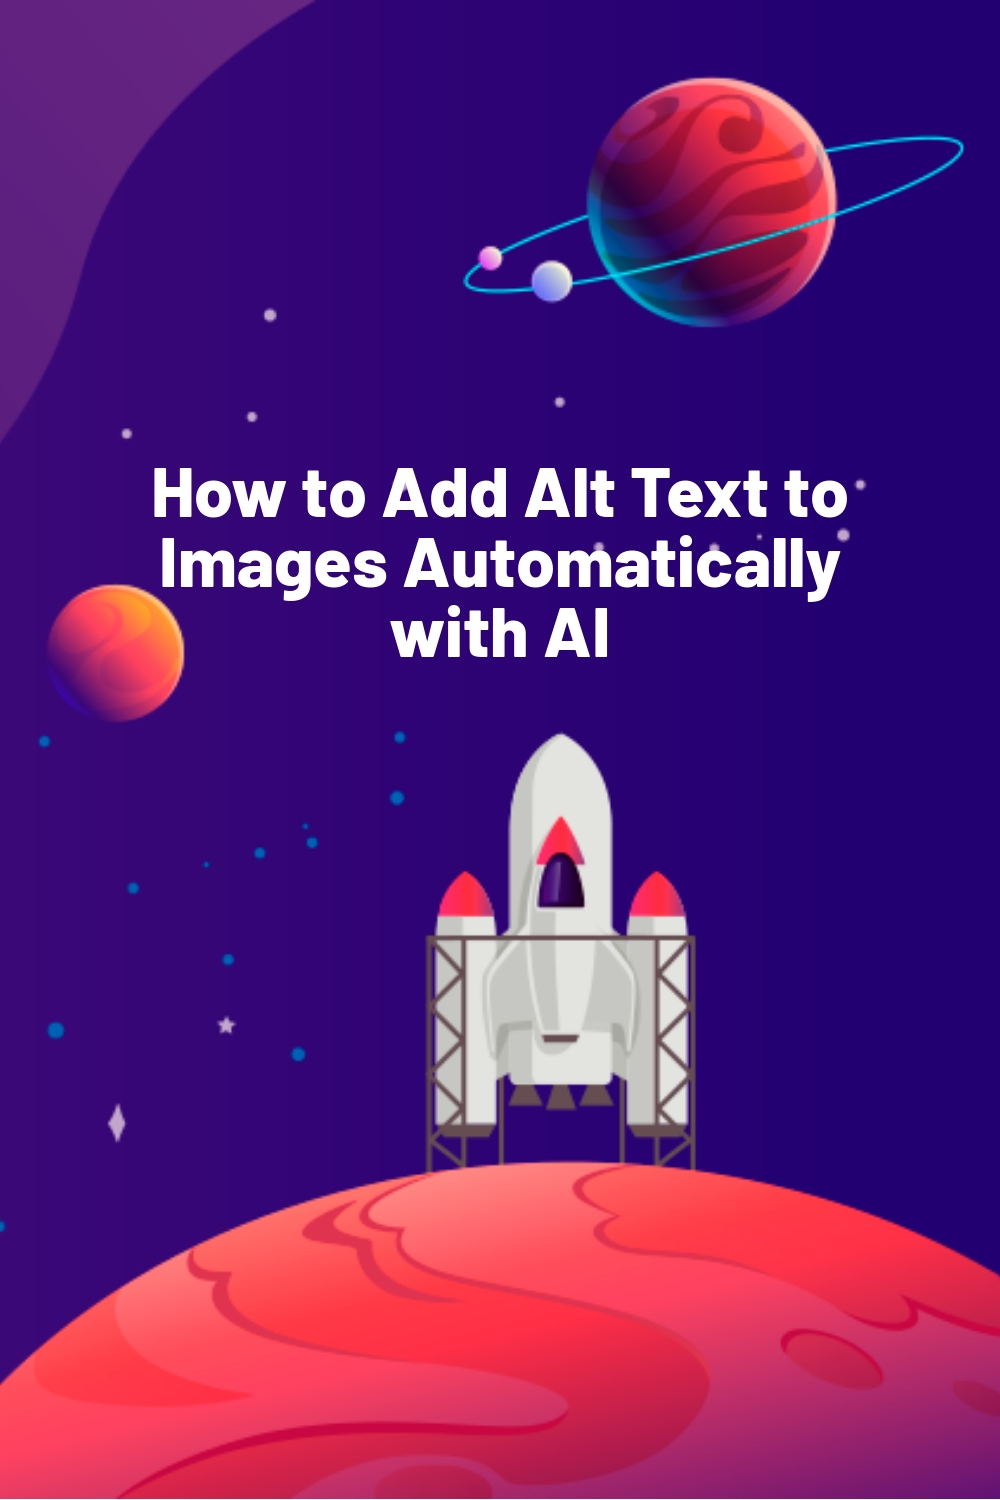 How to Add Alt Text to Images Automatically with AI